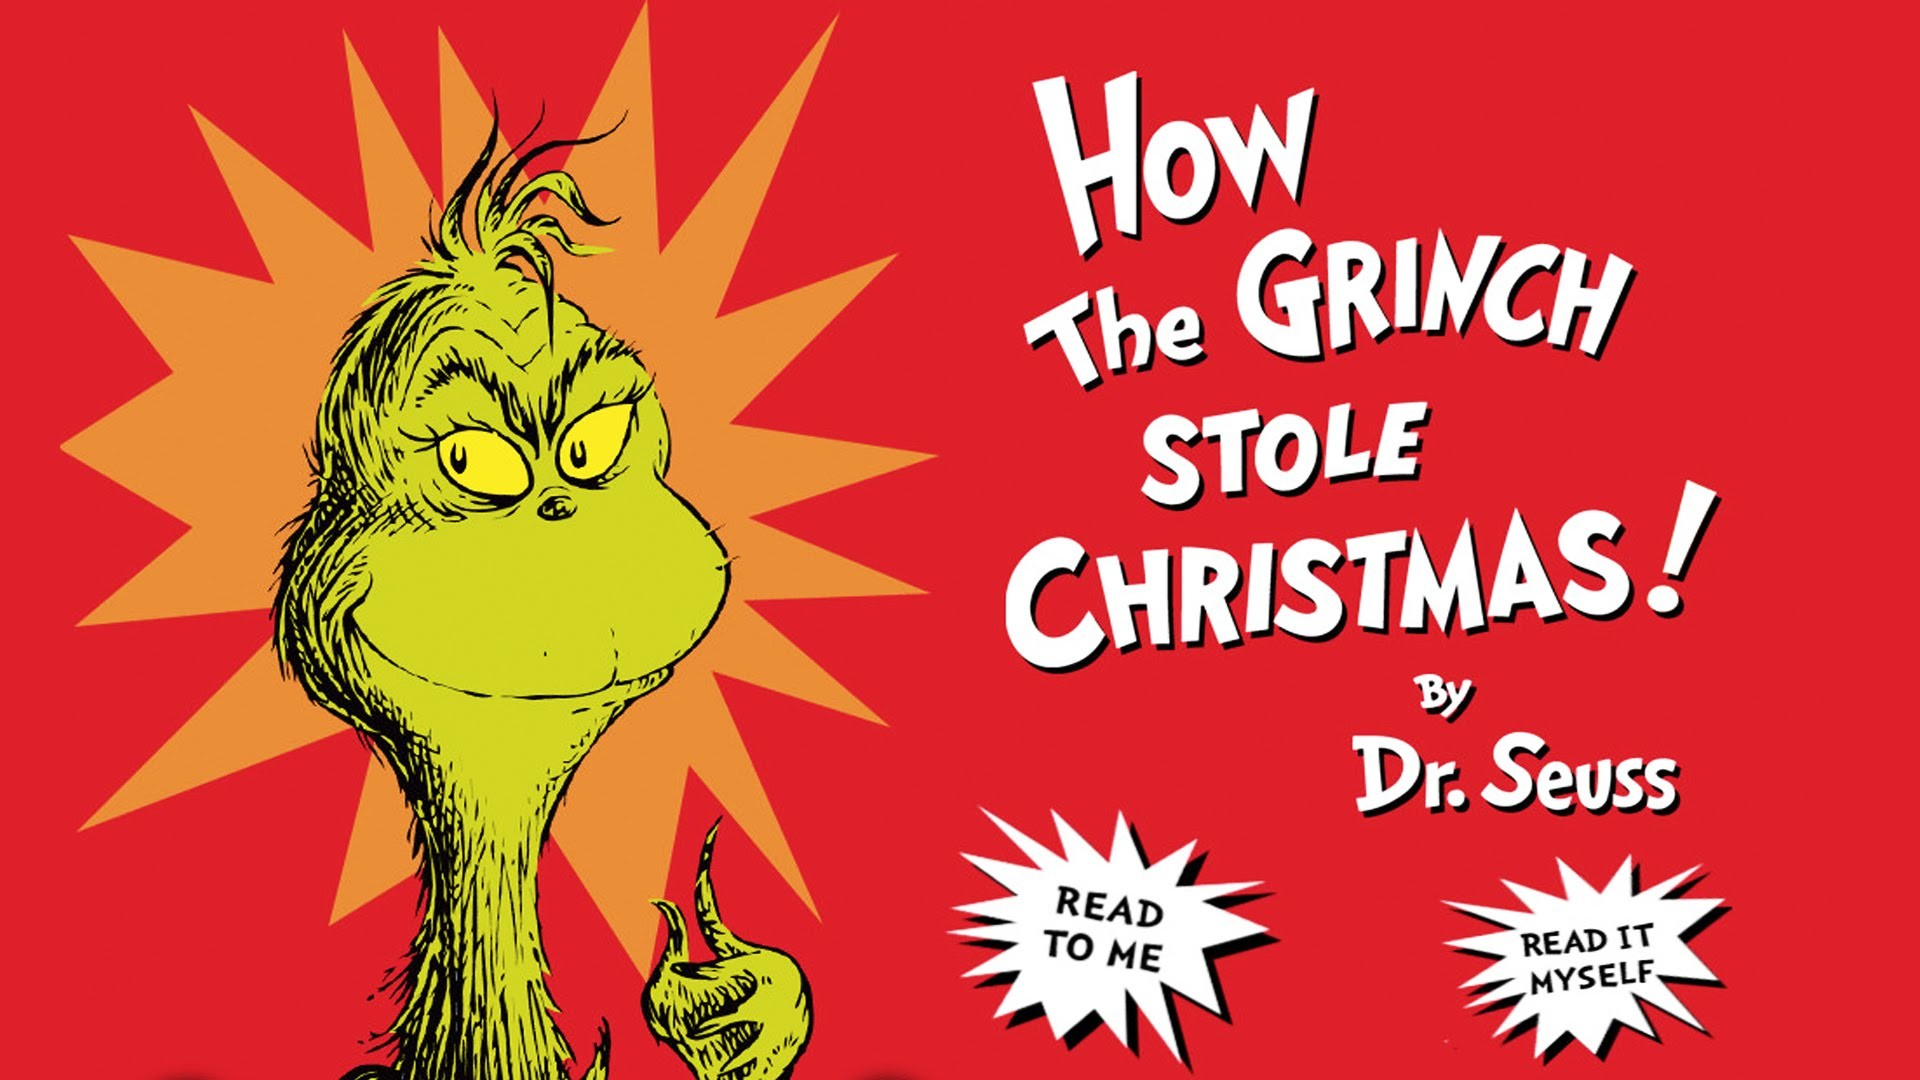 1920x1080 dr seuss how the grinch stole christmas 2000 movie review youtube